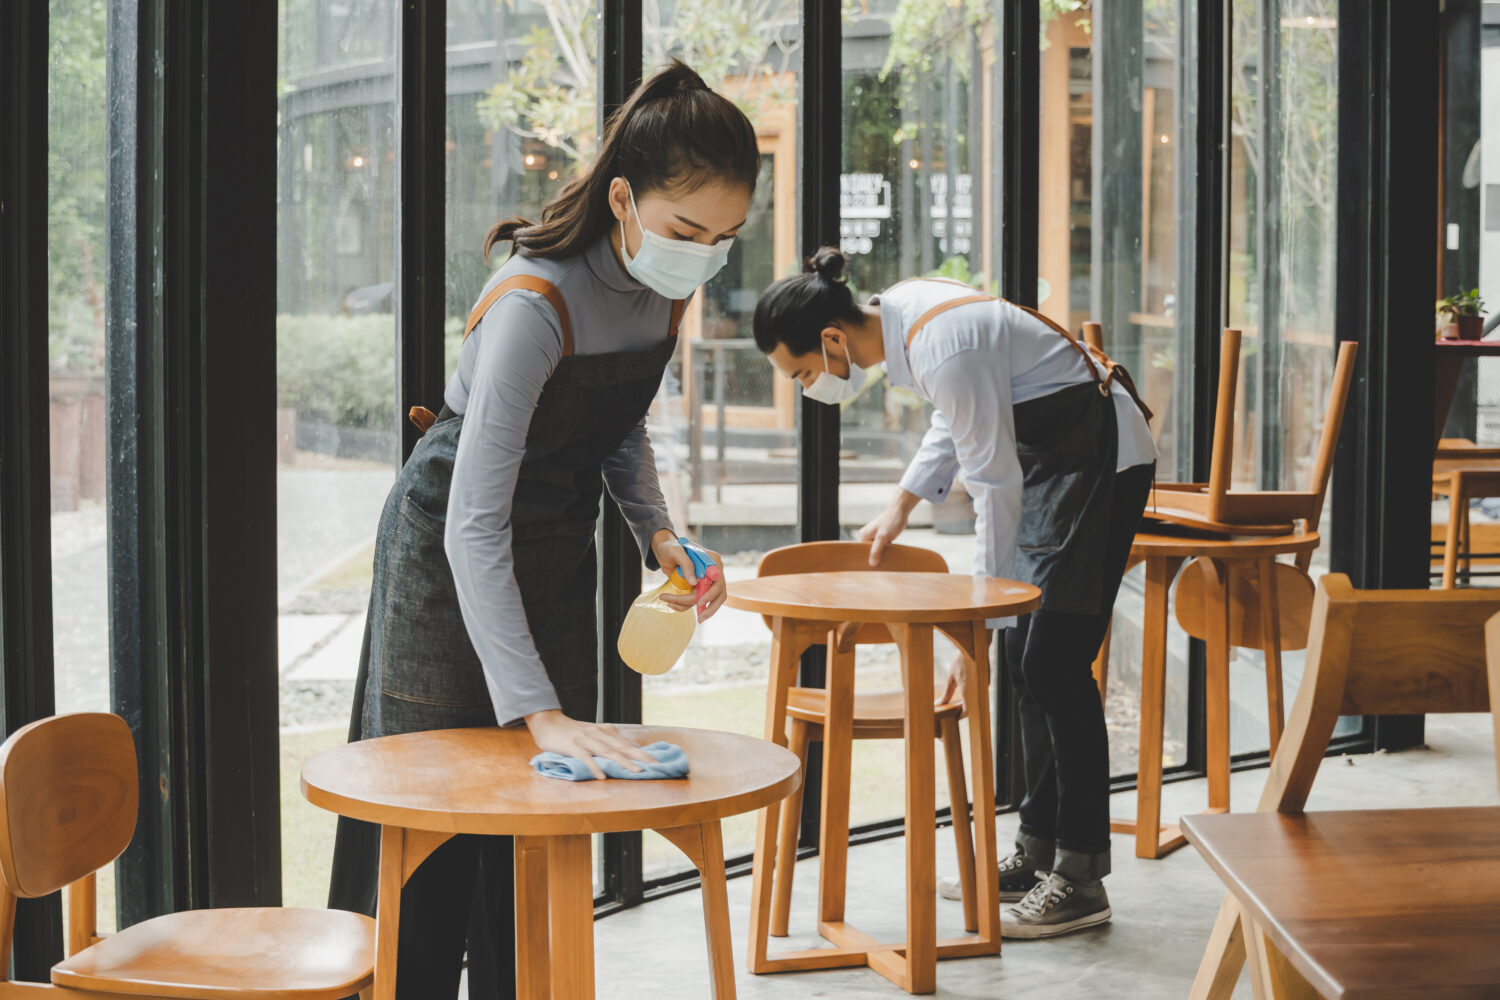 staff cleaning tables wearing face masks